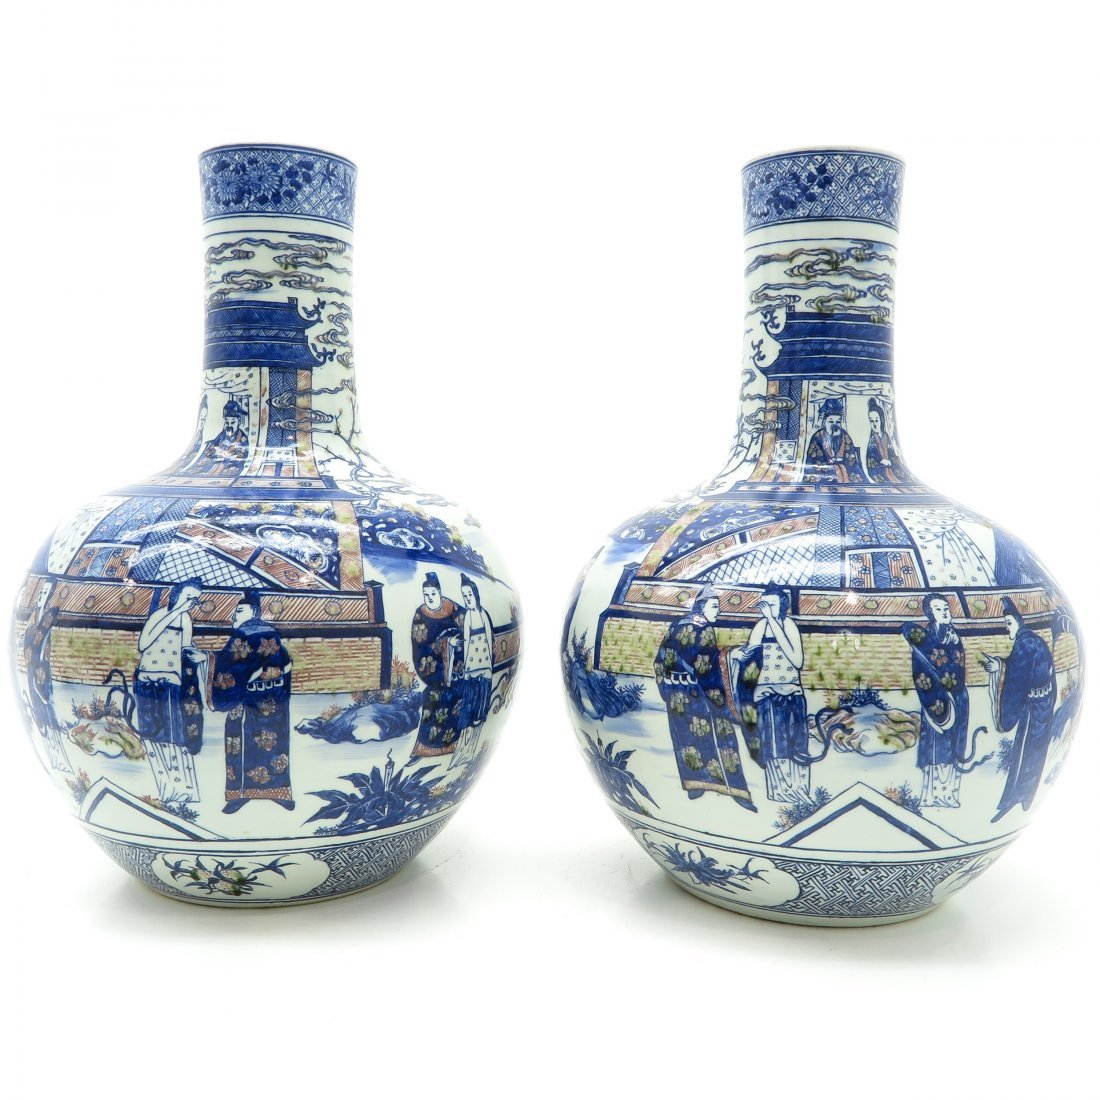 Pair of China Porcelain 19th Century Vases